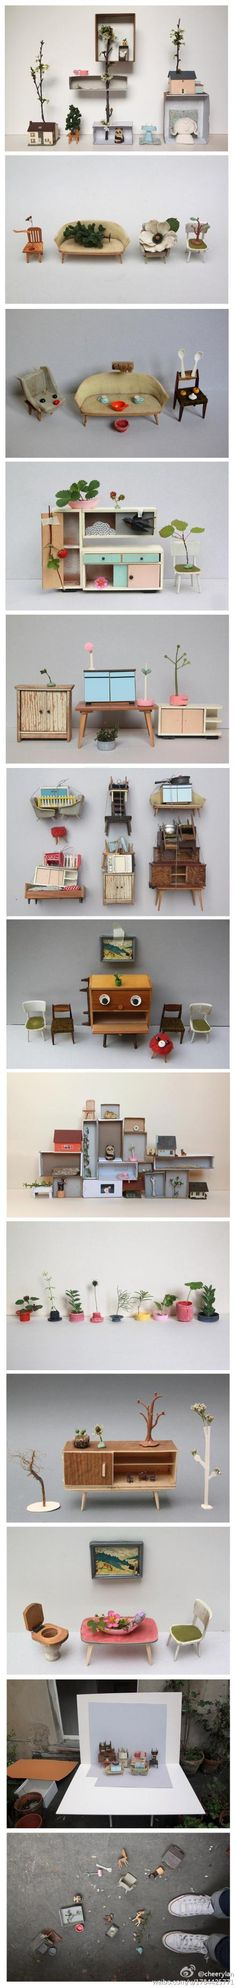 Artist uncredited at source link, unfortunately. I'm pretty sure this is an art piece, but I recently developed an appreciation for dollhouses and furniture.  Been keeping an eye open so I can start my collection!